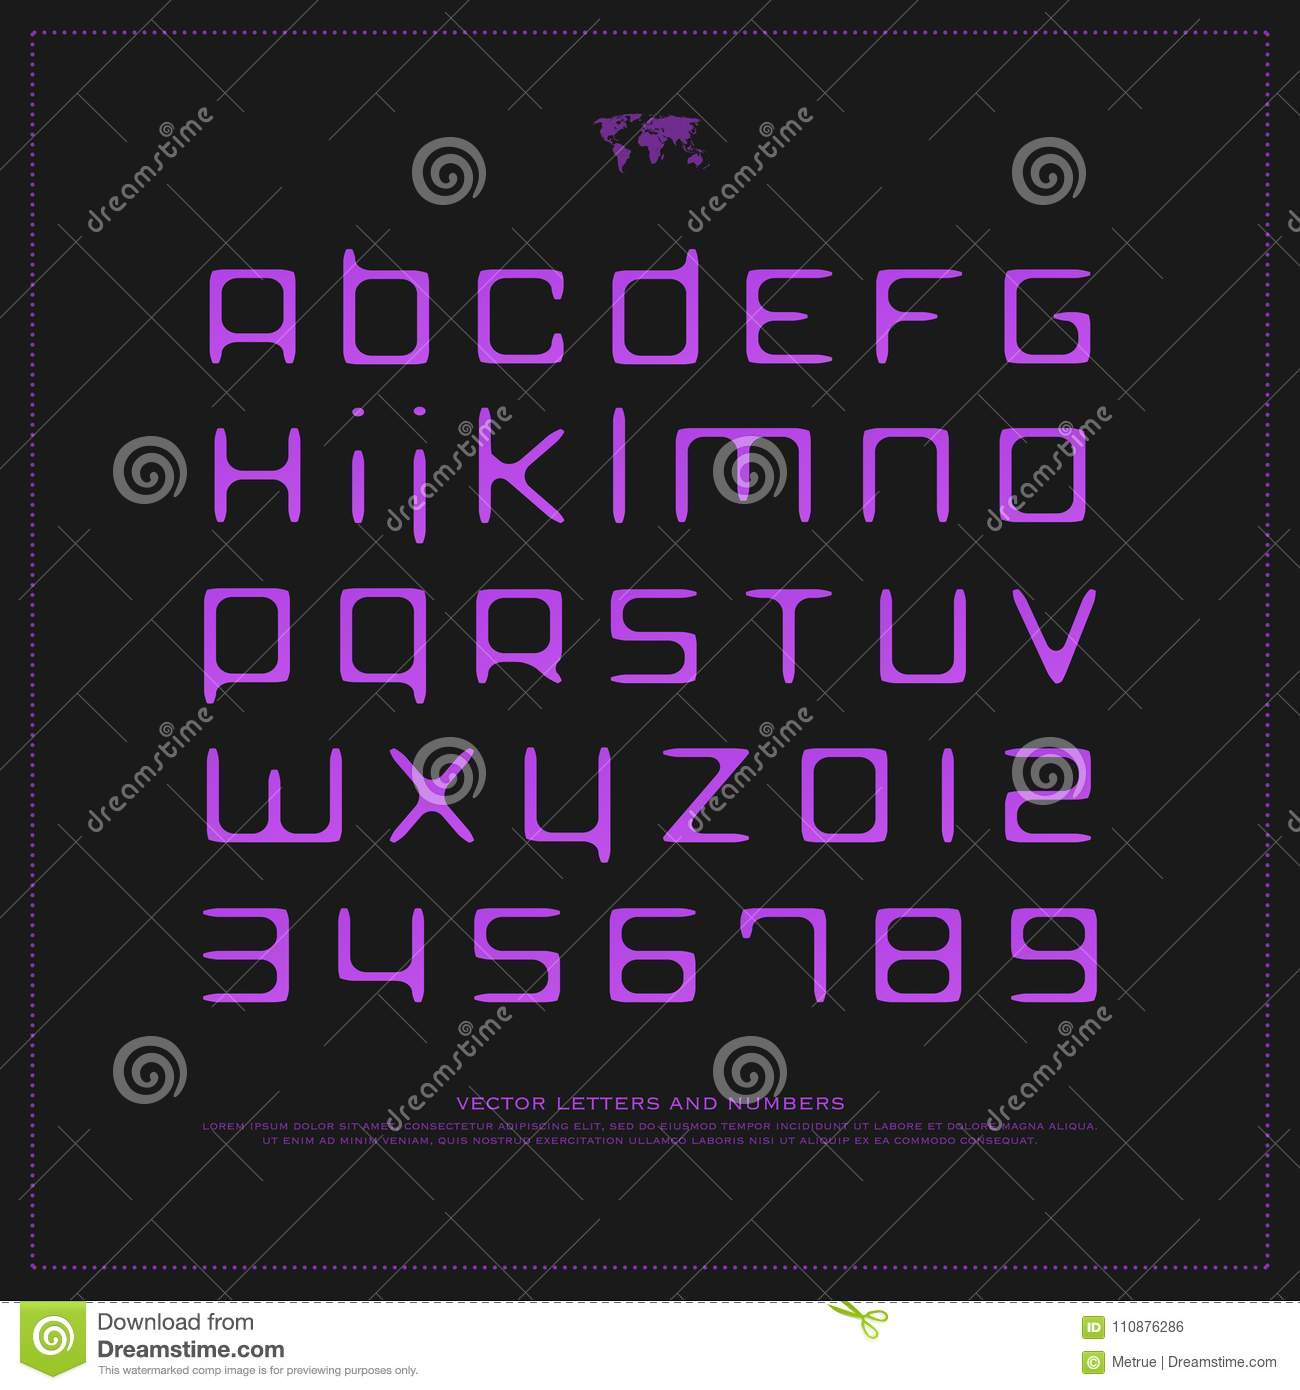 Handwritten style alphabet letters and numbers stock illustration handwritten style alphabet letters and numbers buycottarizona Gallery